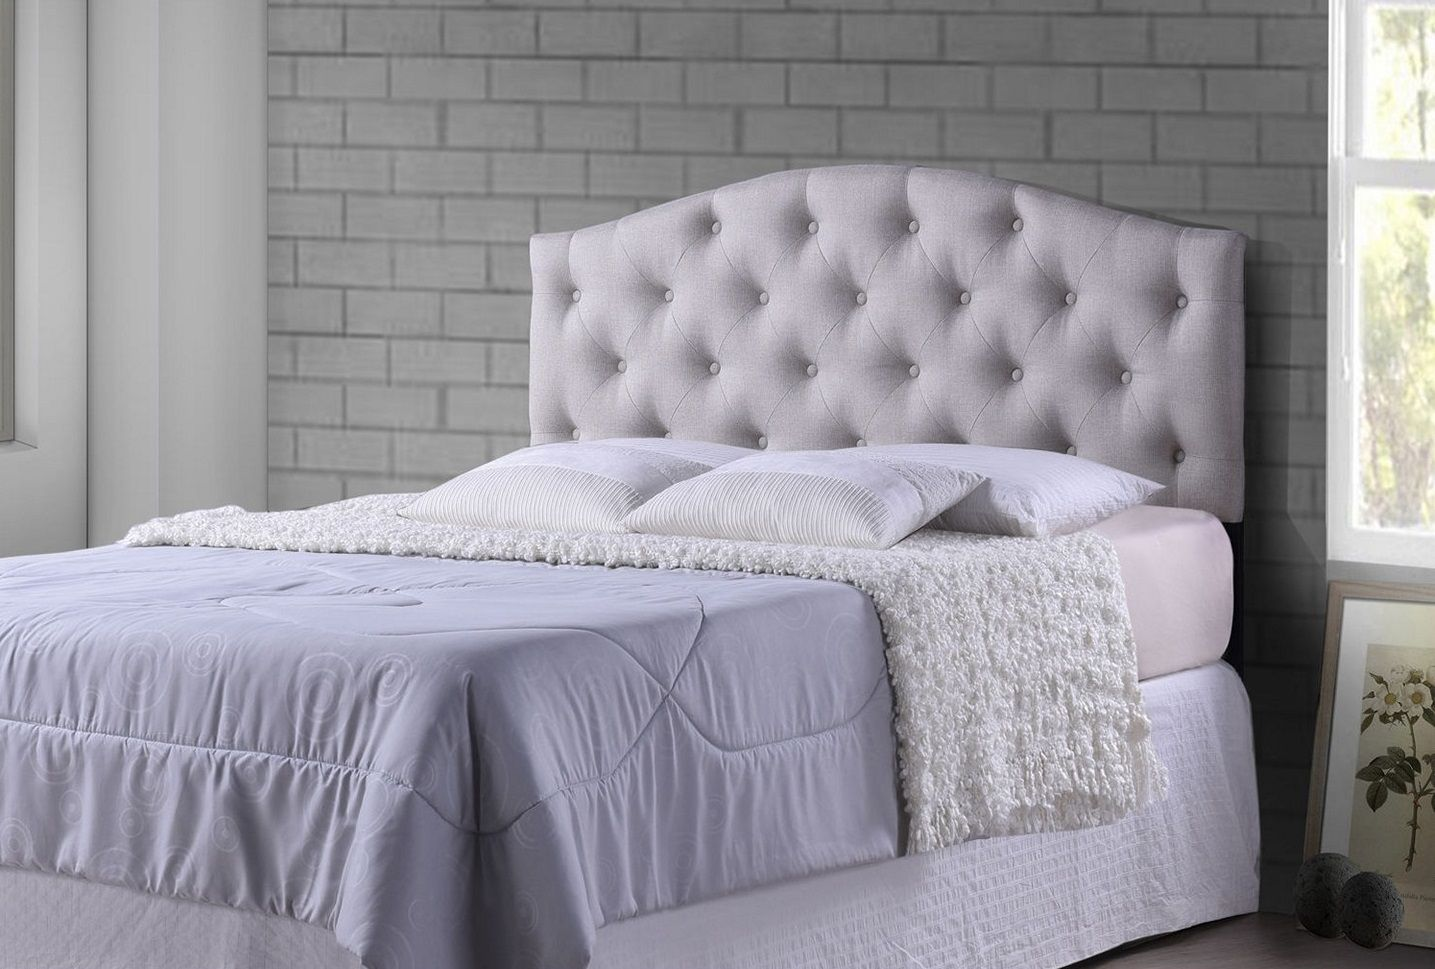 Diy fabric headboard with buttons ideas upholstered